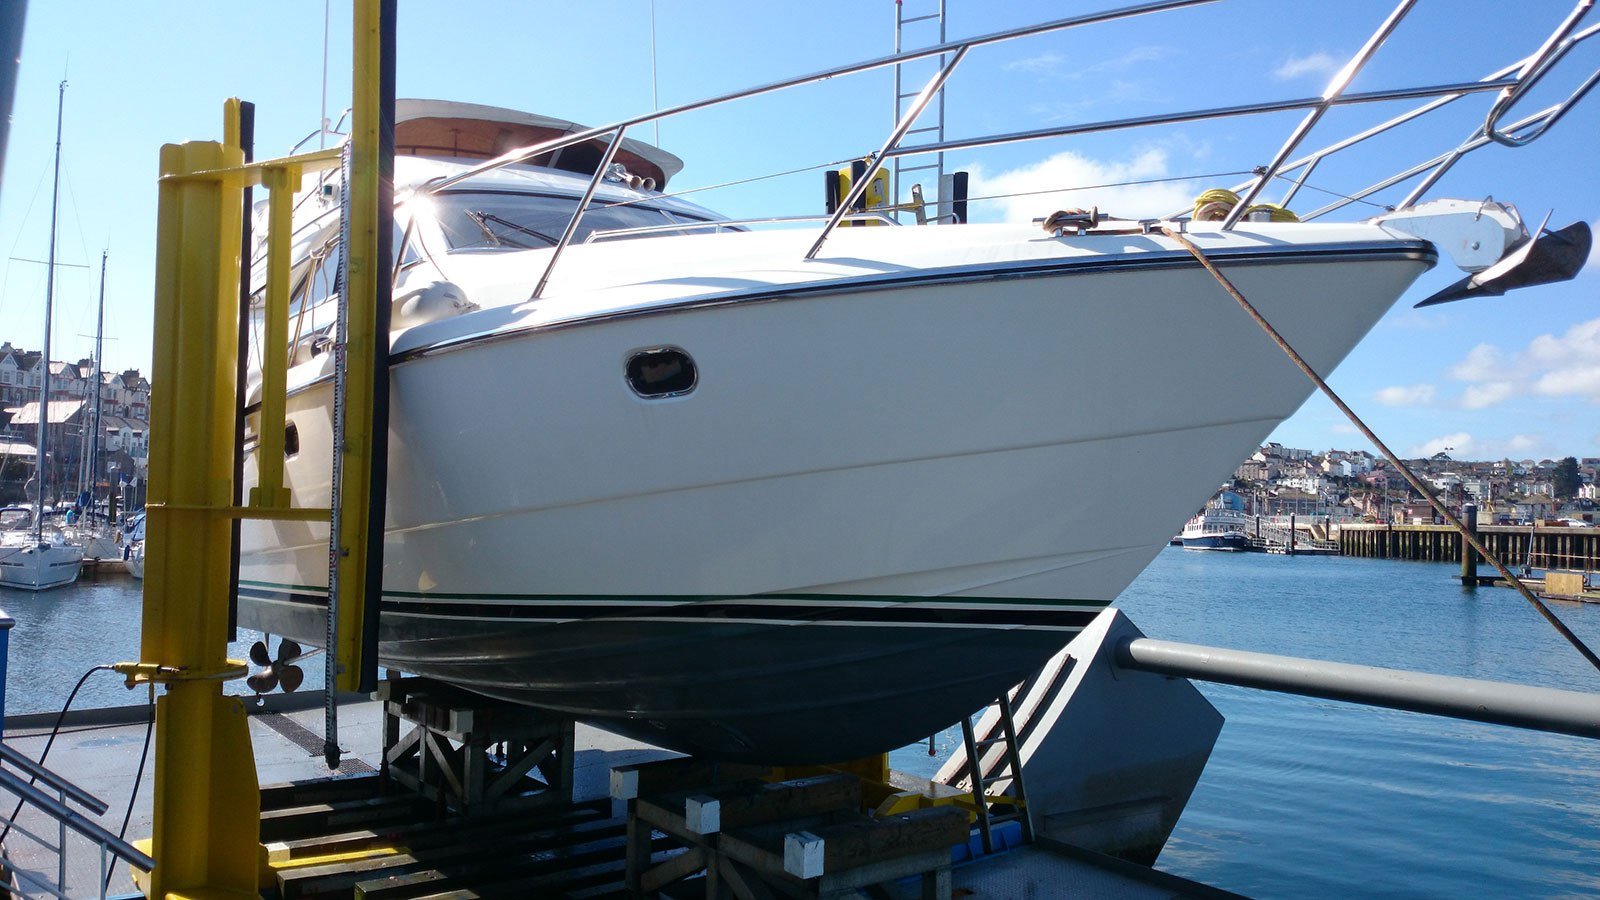 Princess 38 out of the water - Princess Yachts Flybridge 38 For Sale